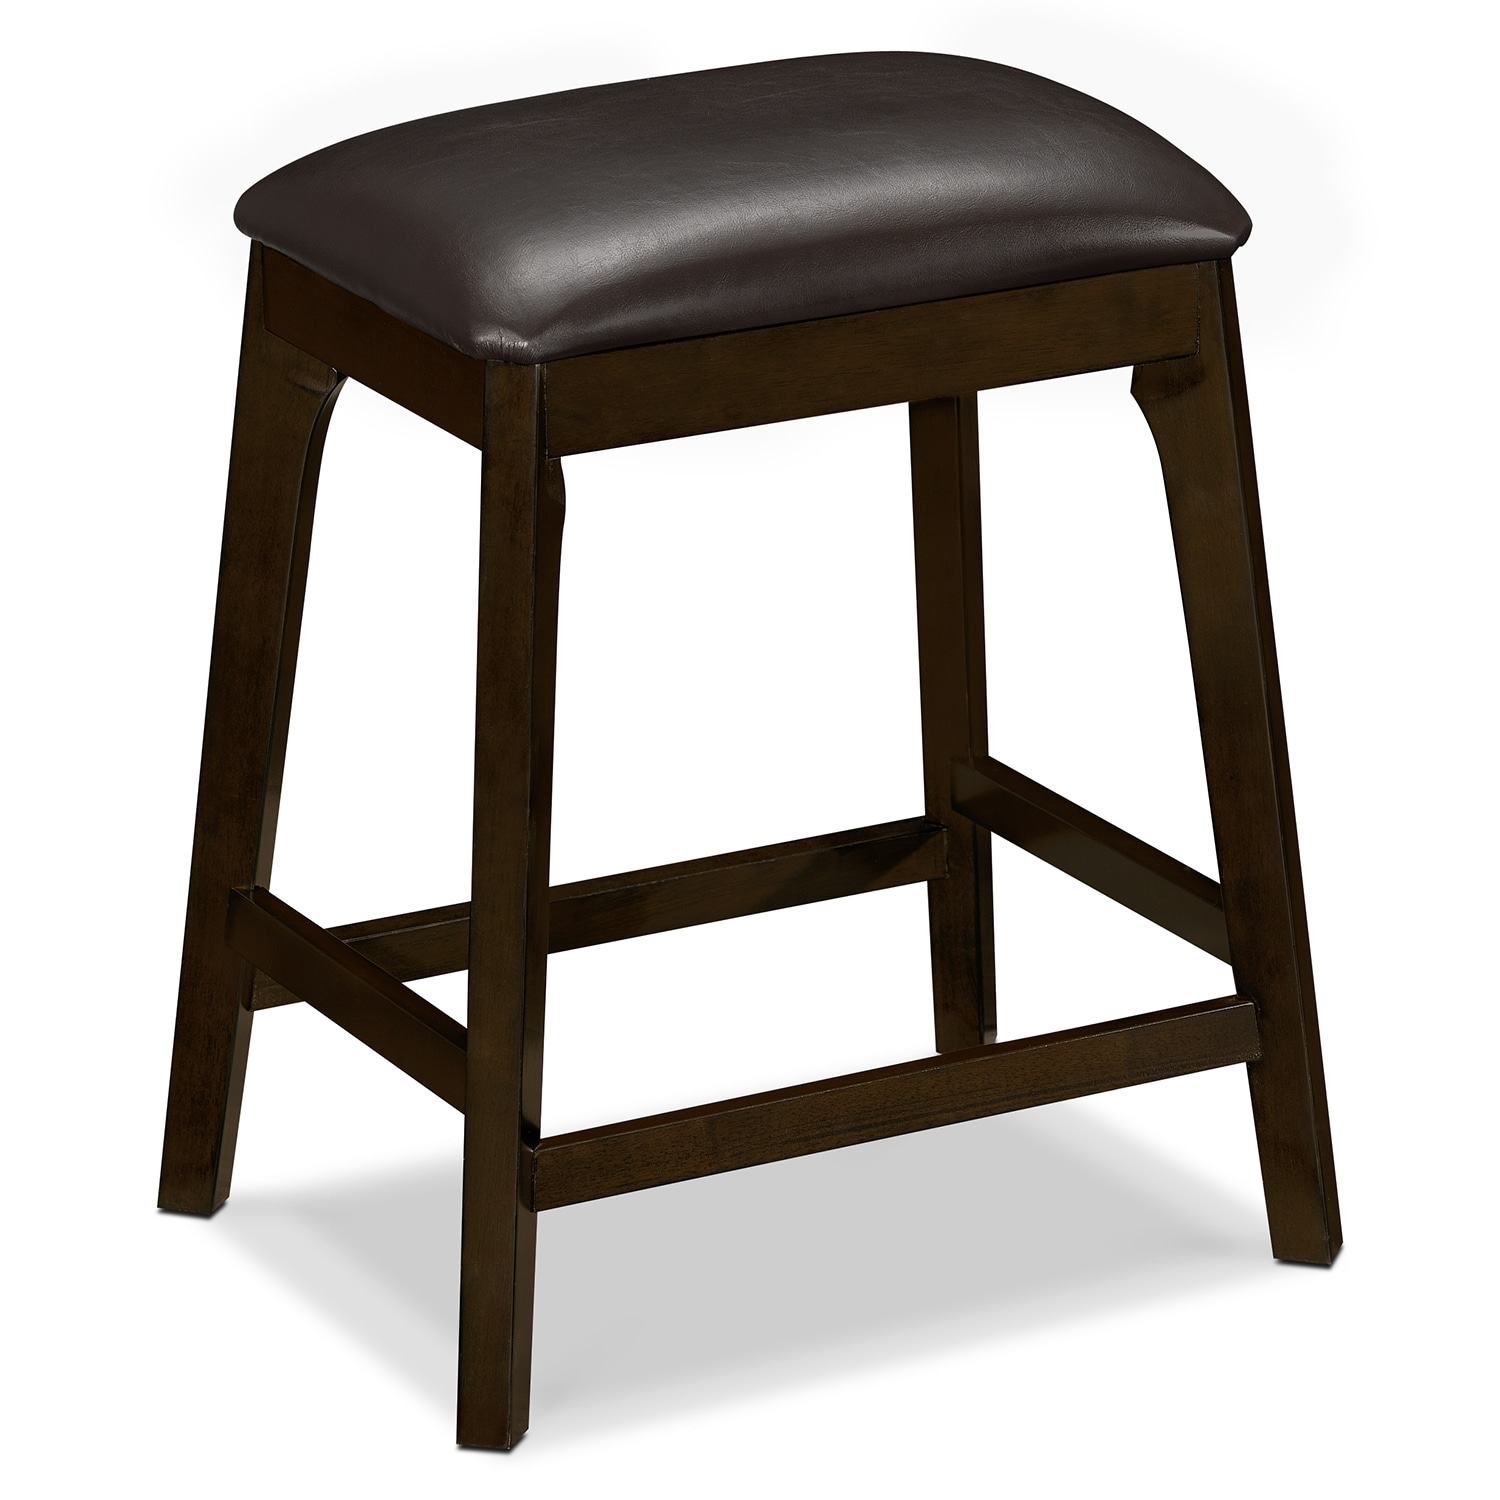 [Mystic Backless Counter-Height Stool]